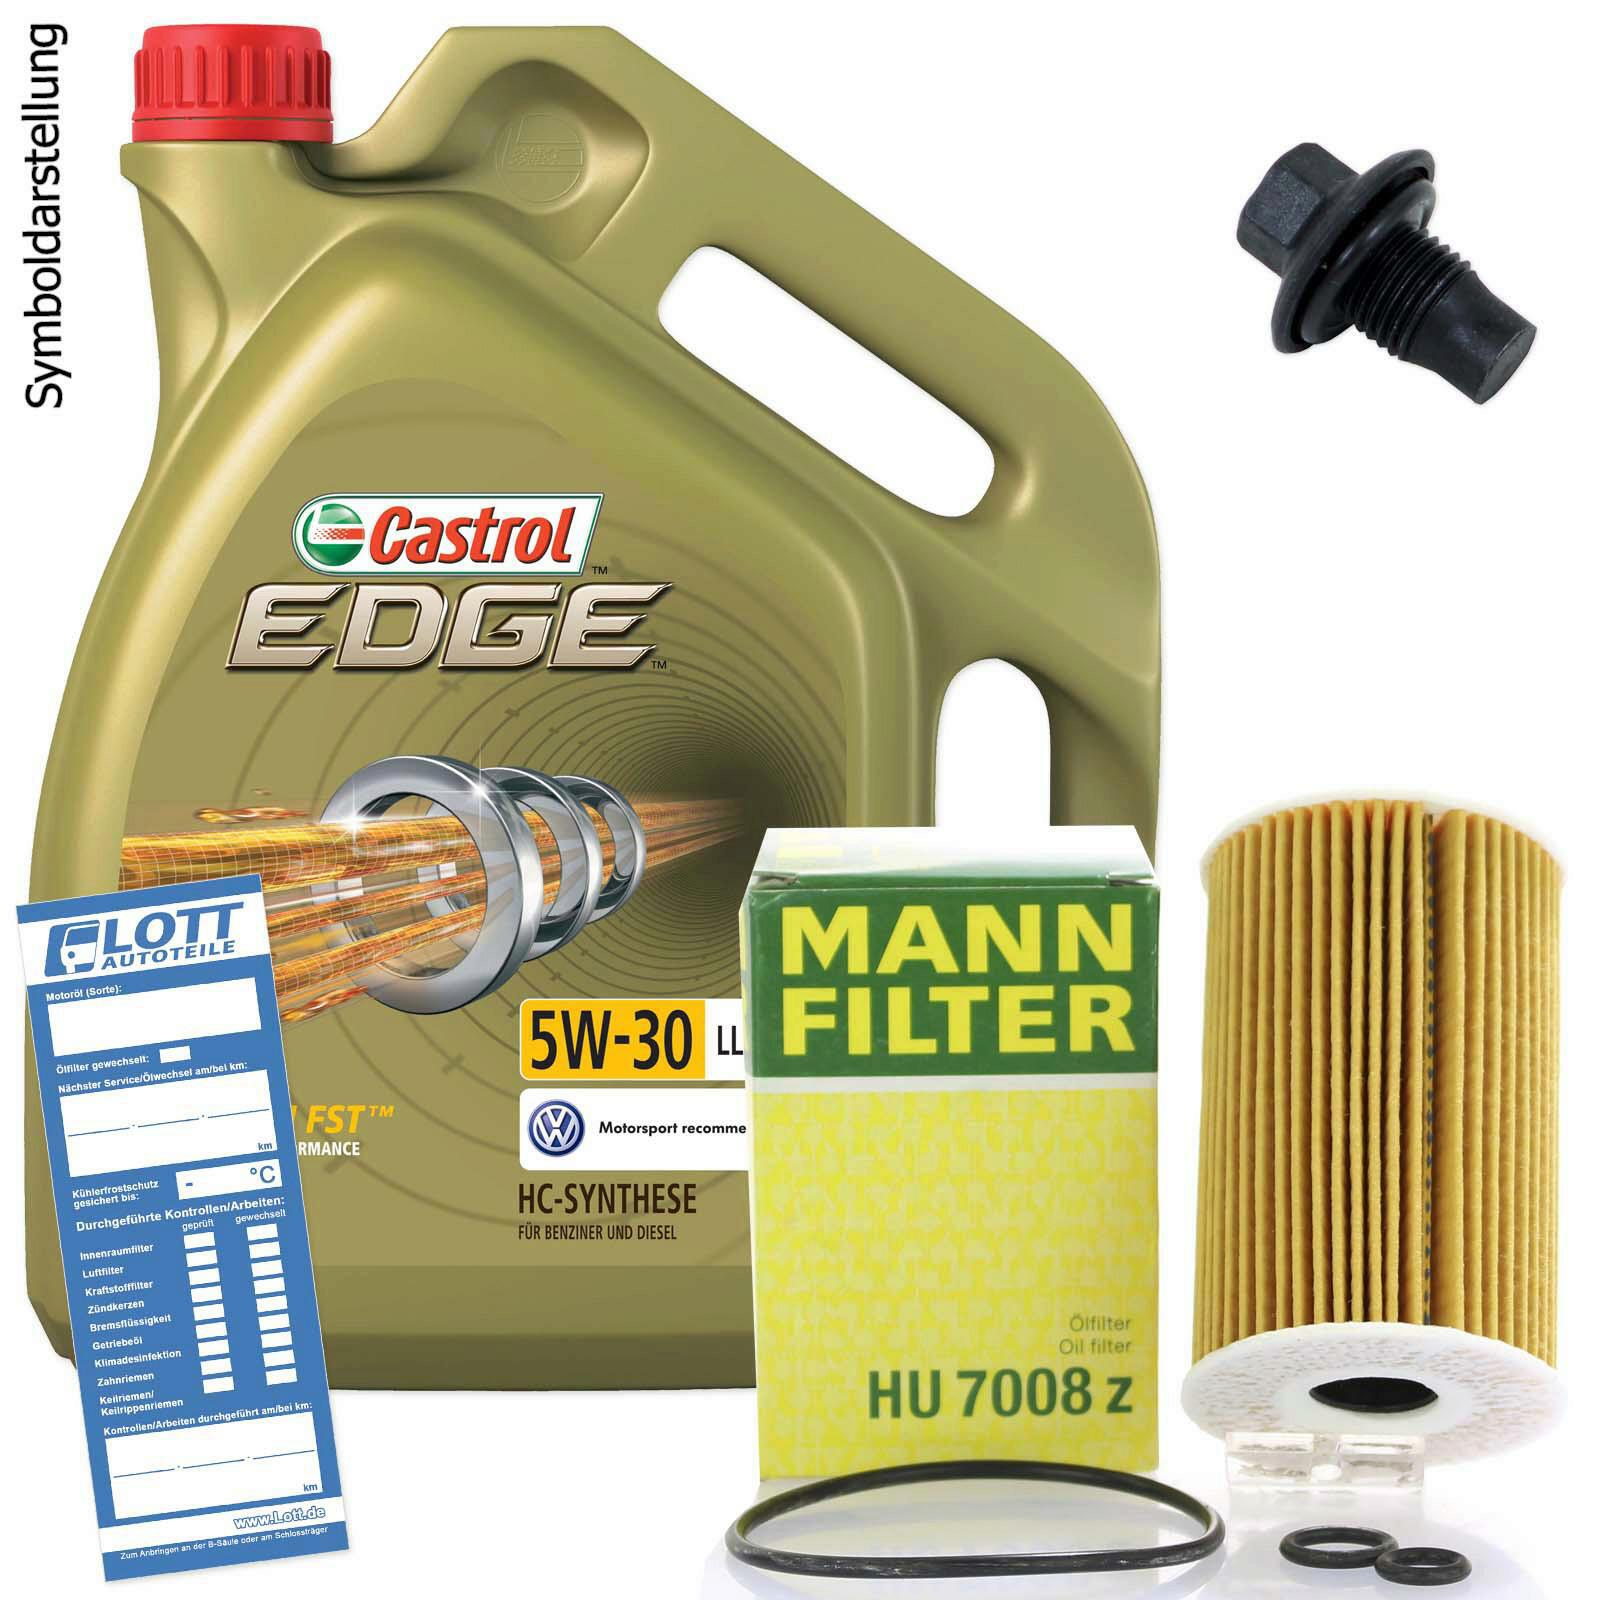 5l castrol edge ll 5w 30 l motor l mann lfilter. Black Bedroom Furniture Sets. Home Design Ideas